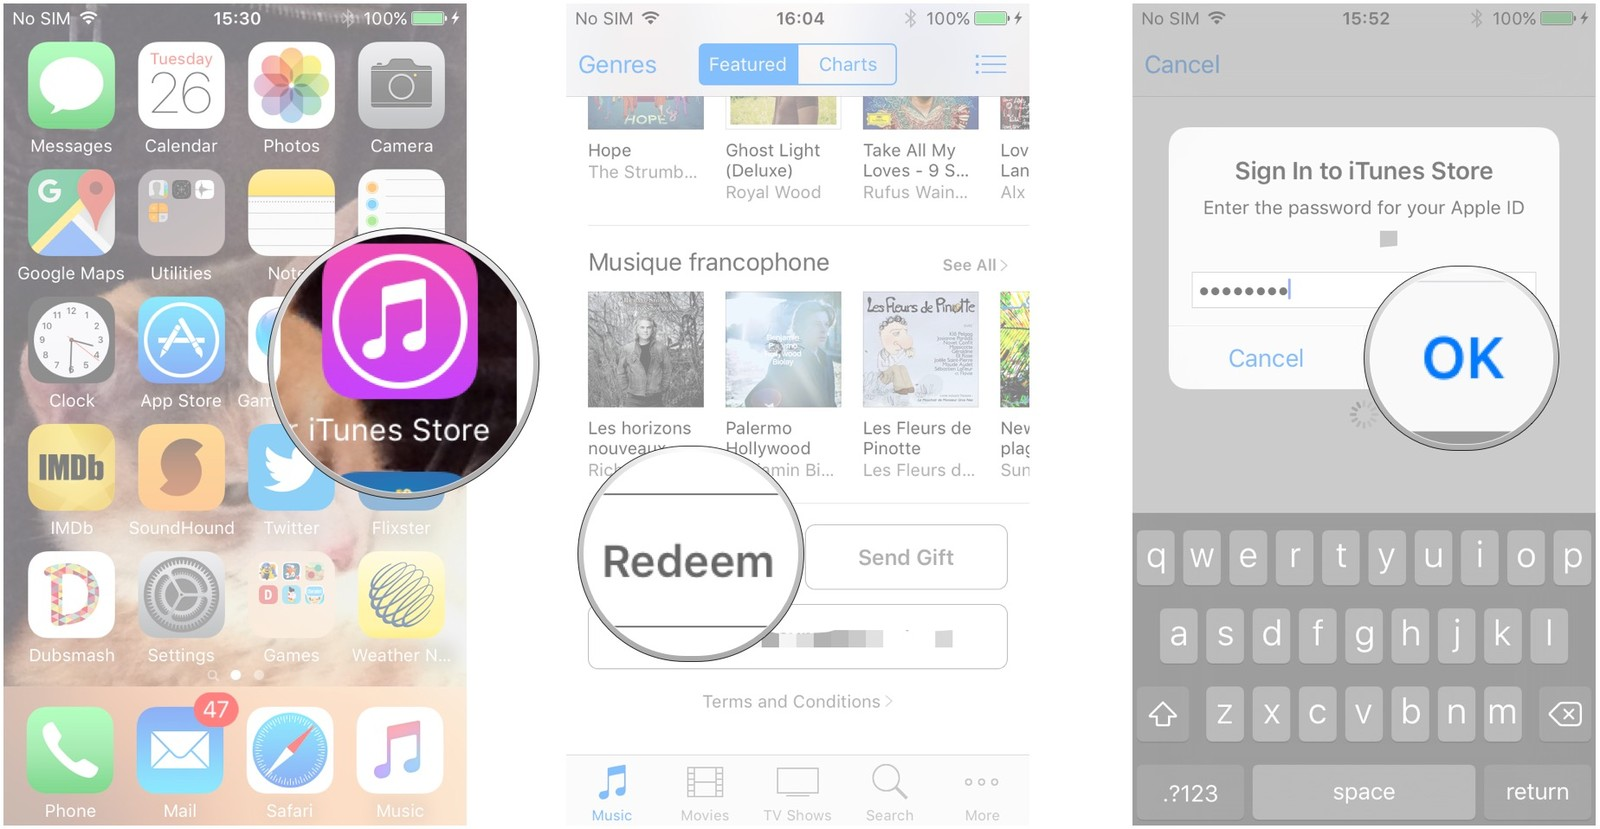 How to use itunes card instead of credit card